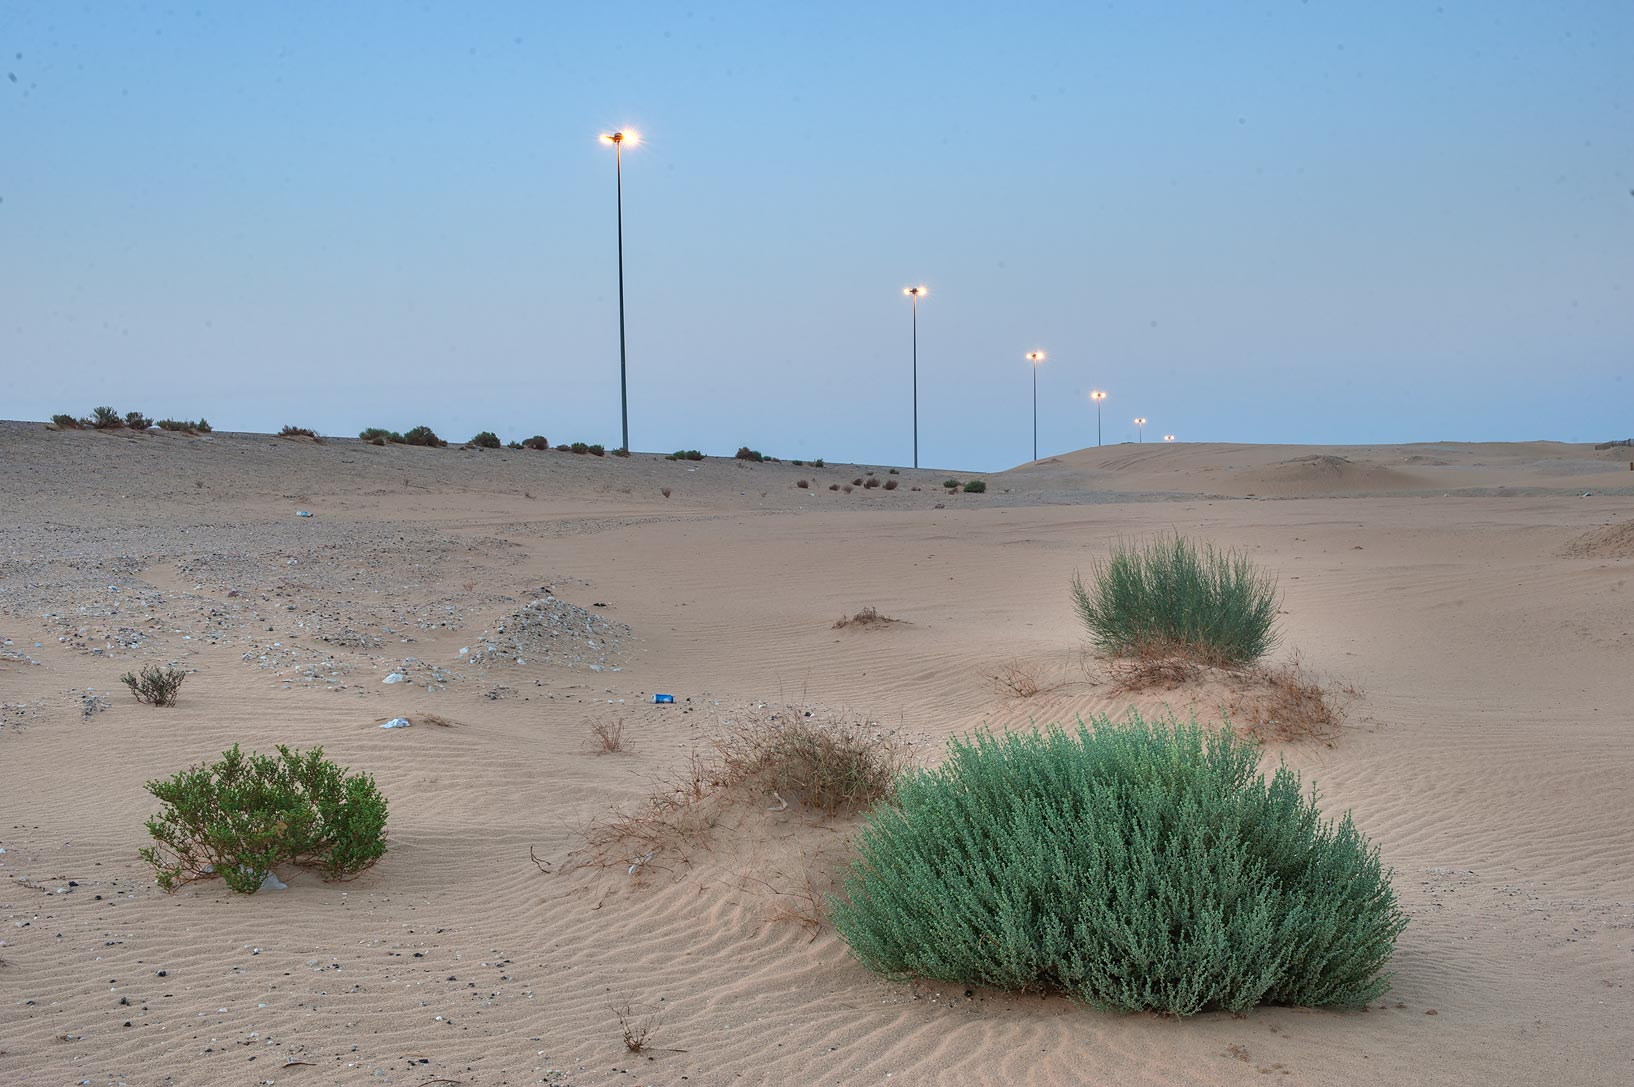 Plants in windblown sand on roadside of Salwa Rd. in area of Khashem Al Nekhsh. Qatar